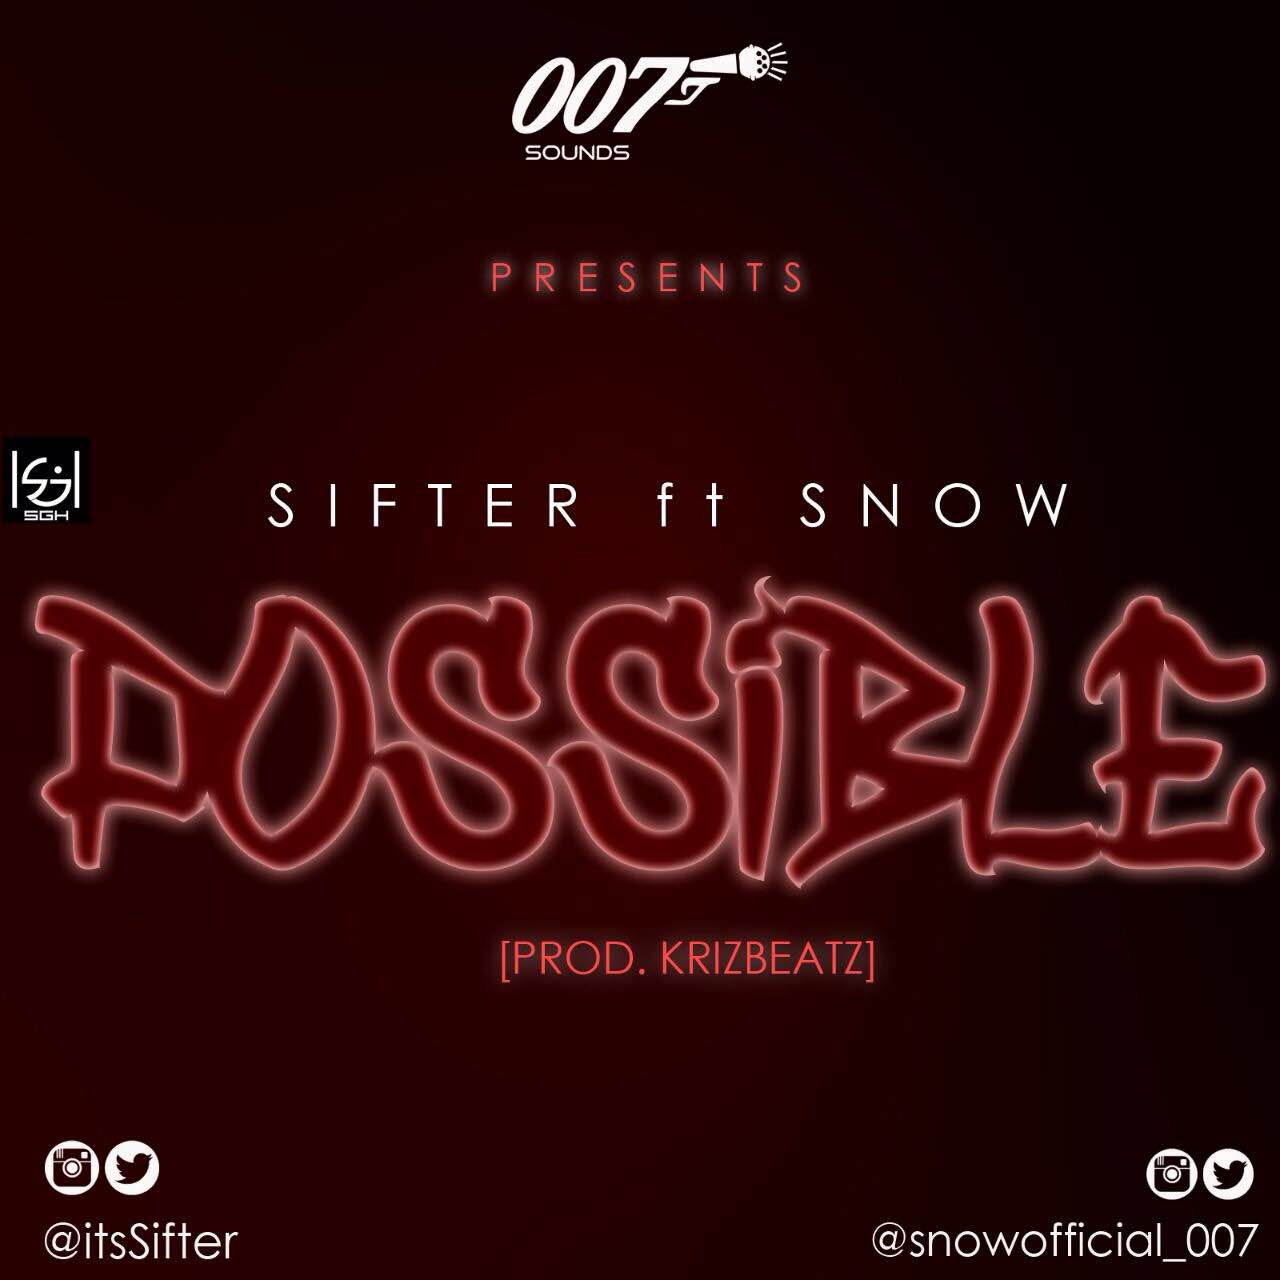 Sifter Ft. Snow – Possible (Prod. Krizbeatz)